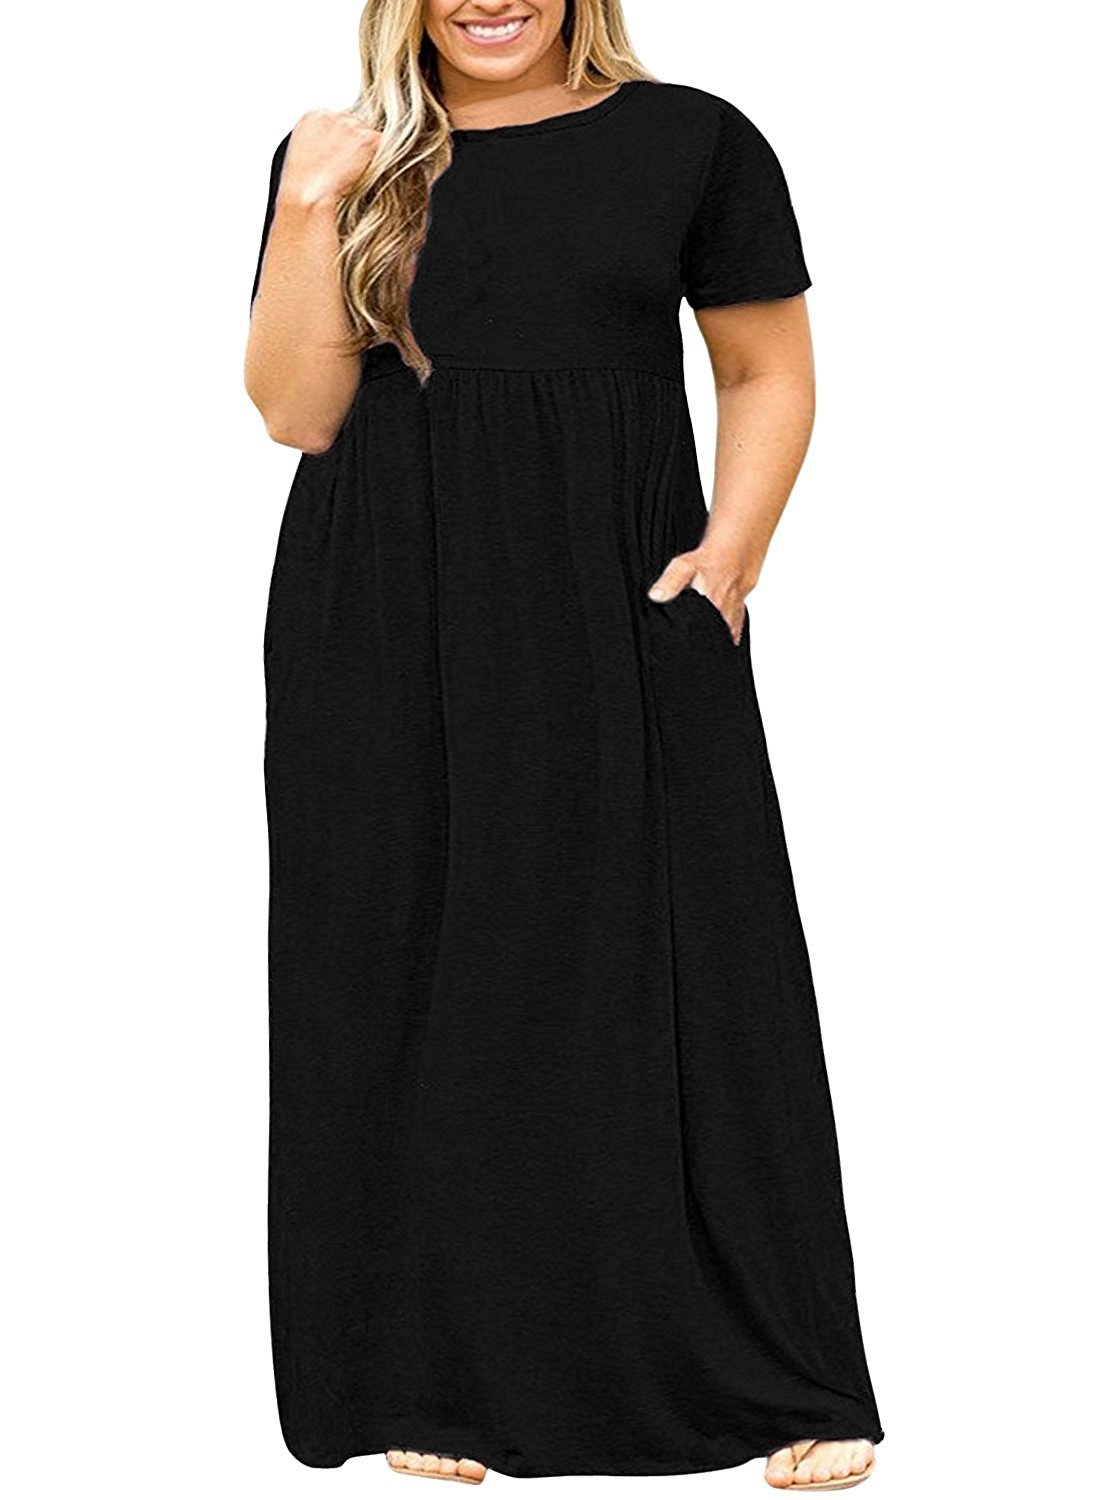 POSESHE Women Short Sleeve Loose Plain Casual Plus Size Long Maxi Dress with Pockets Black 2XL by POSESHE